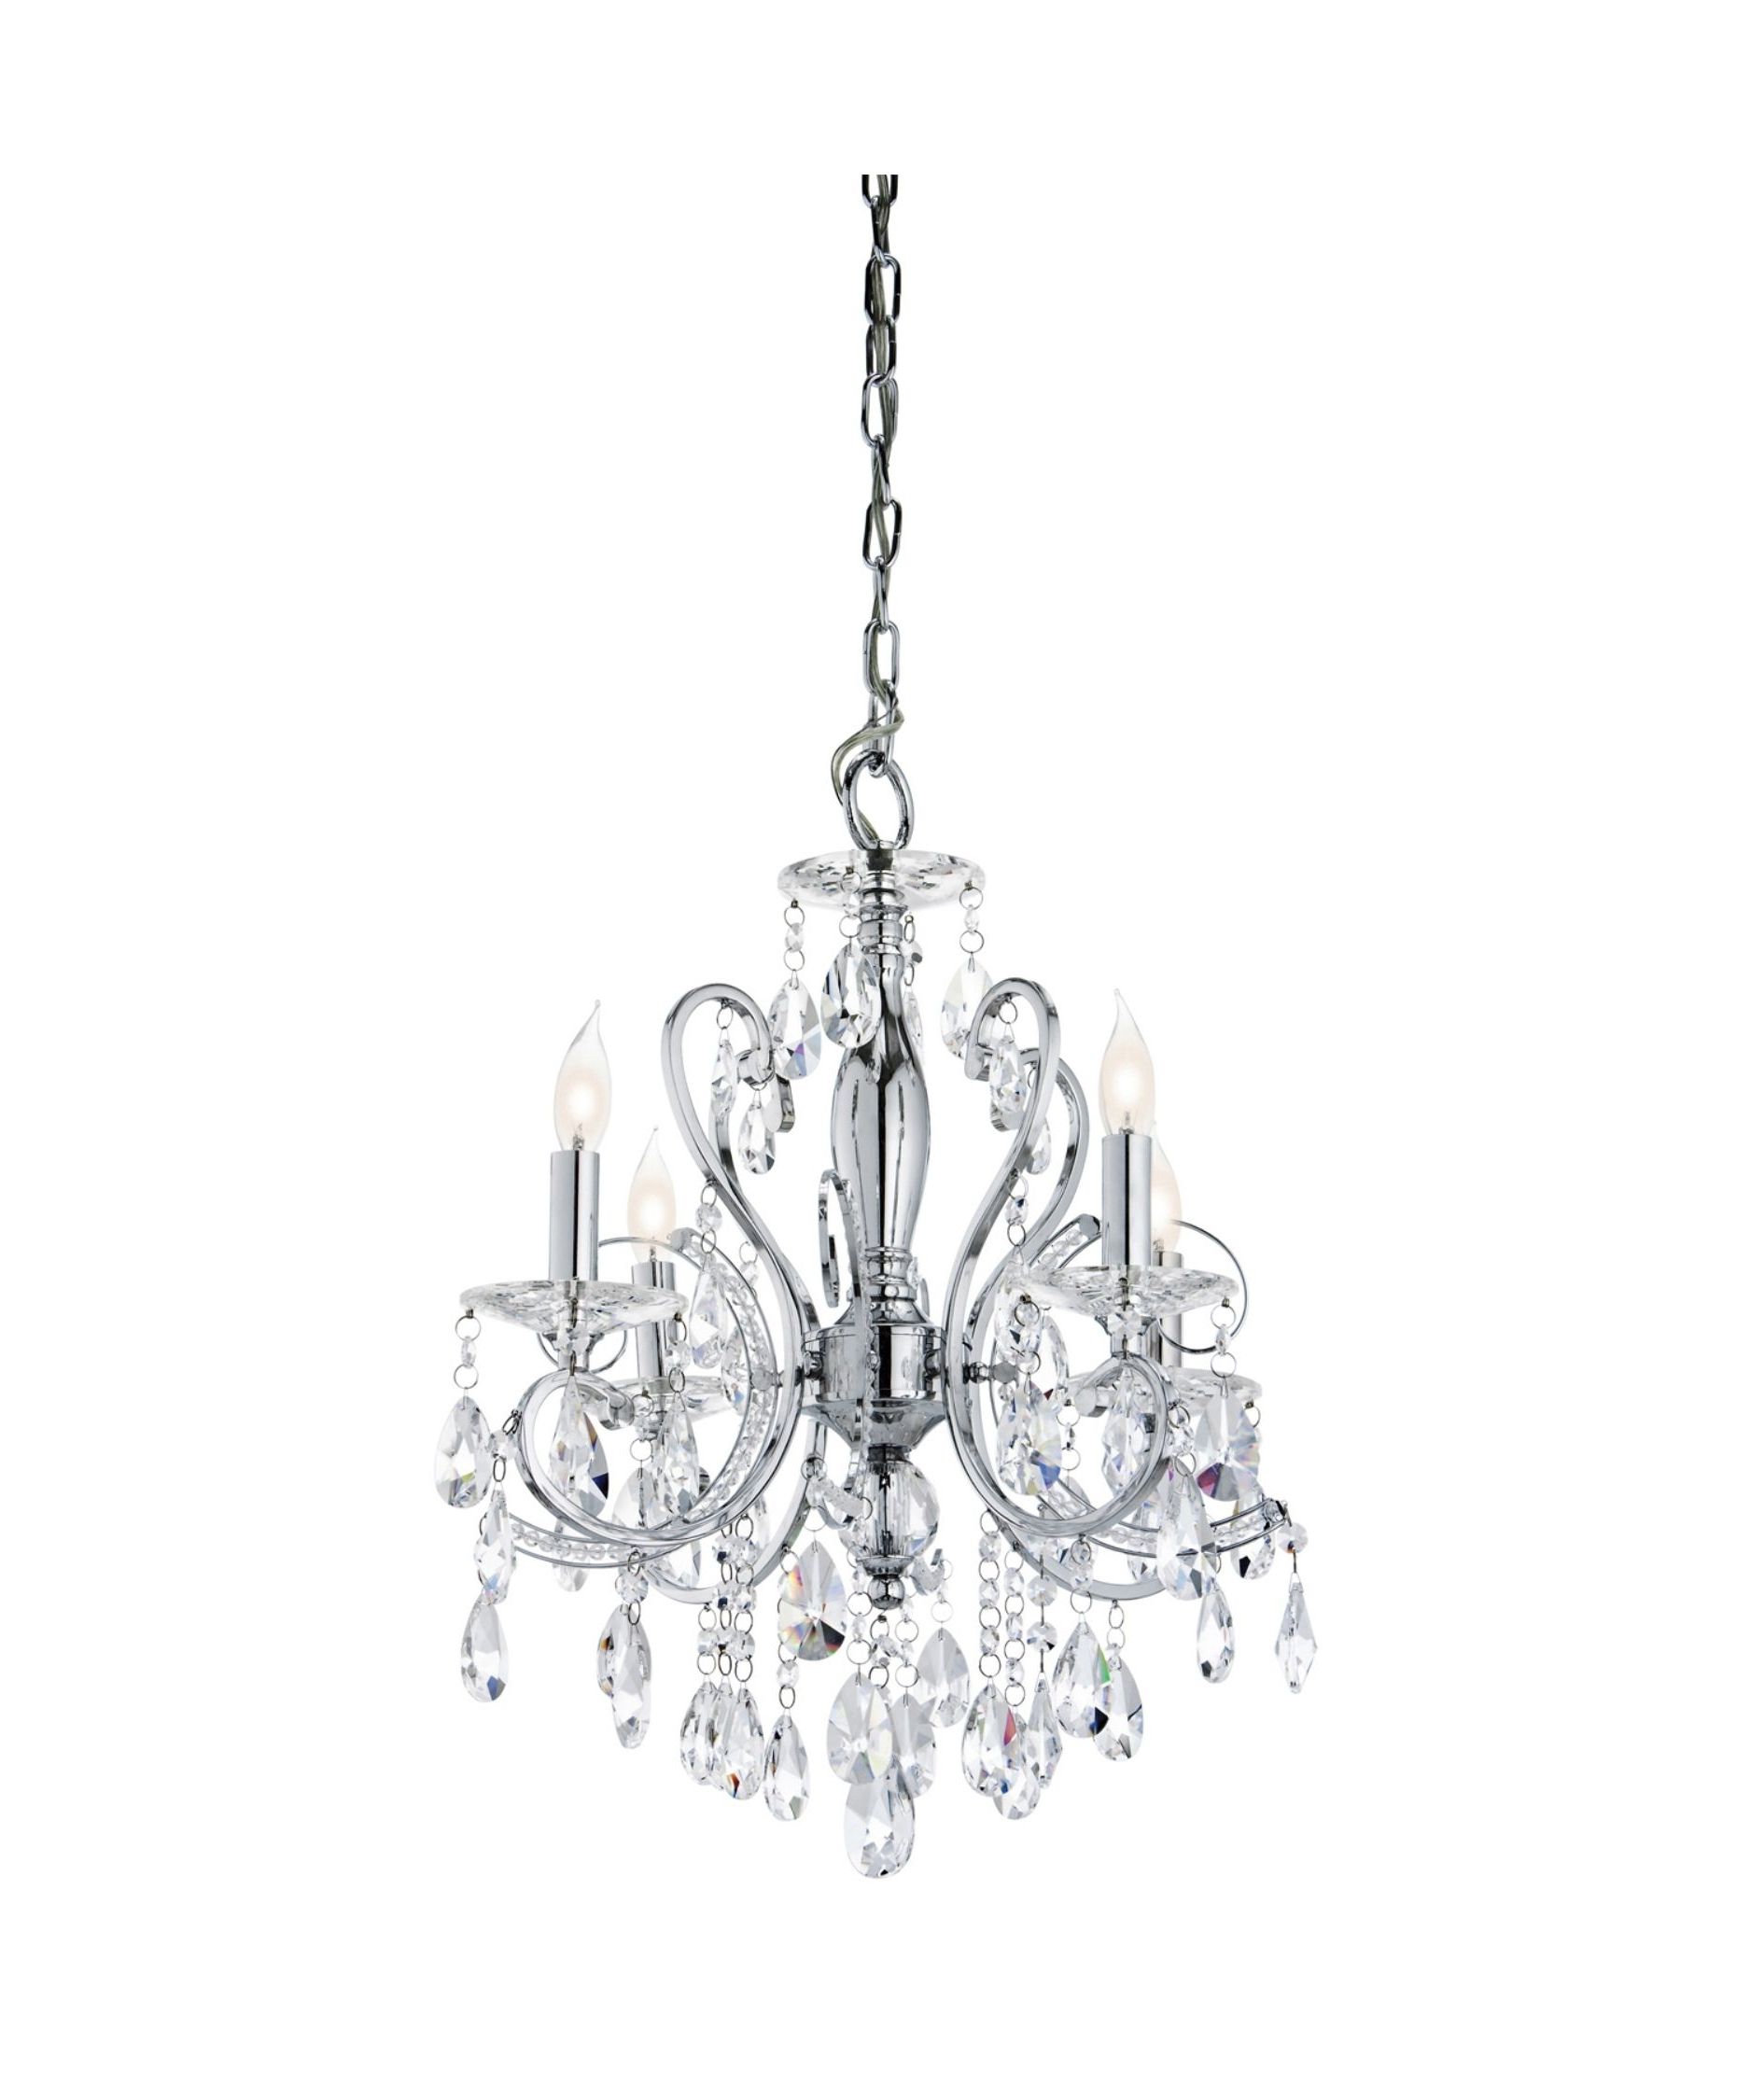 2019 Mini Bathroom Chandeliers Pertaining To Nice Mini Chandelier For Bathroom #7 Mini Crystal Chandelier (View 2 of 20)